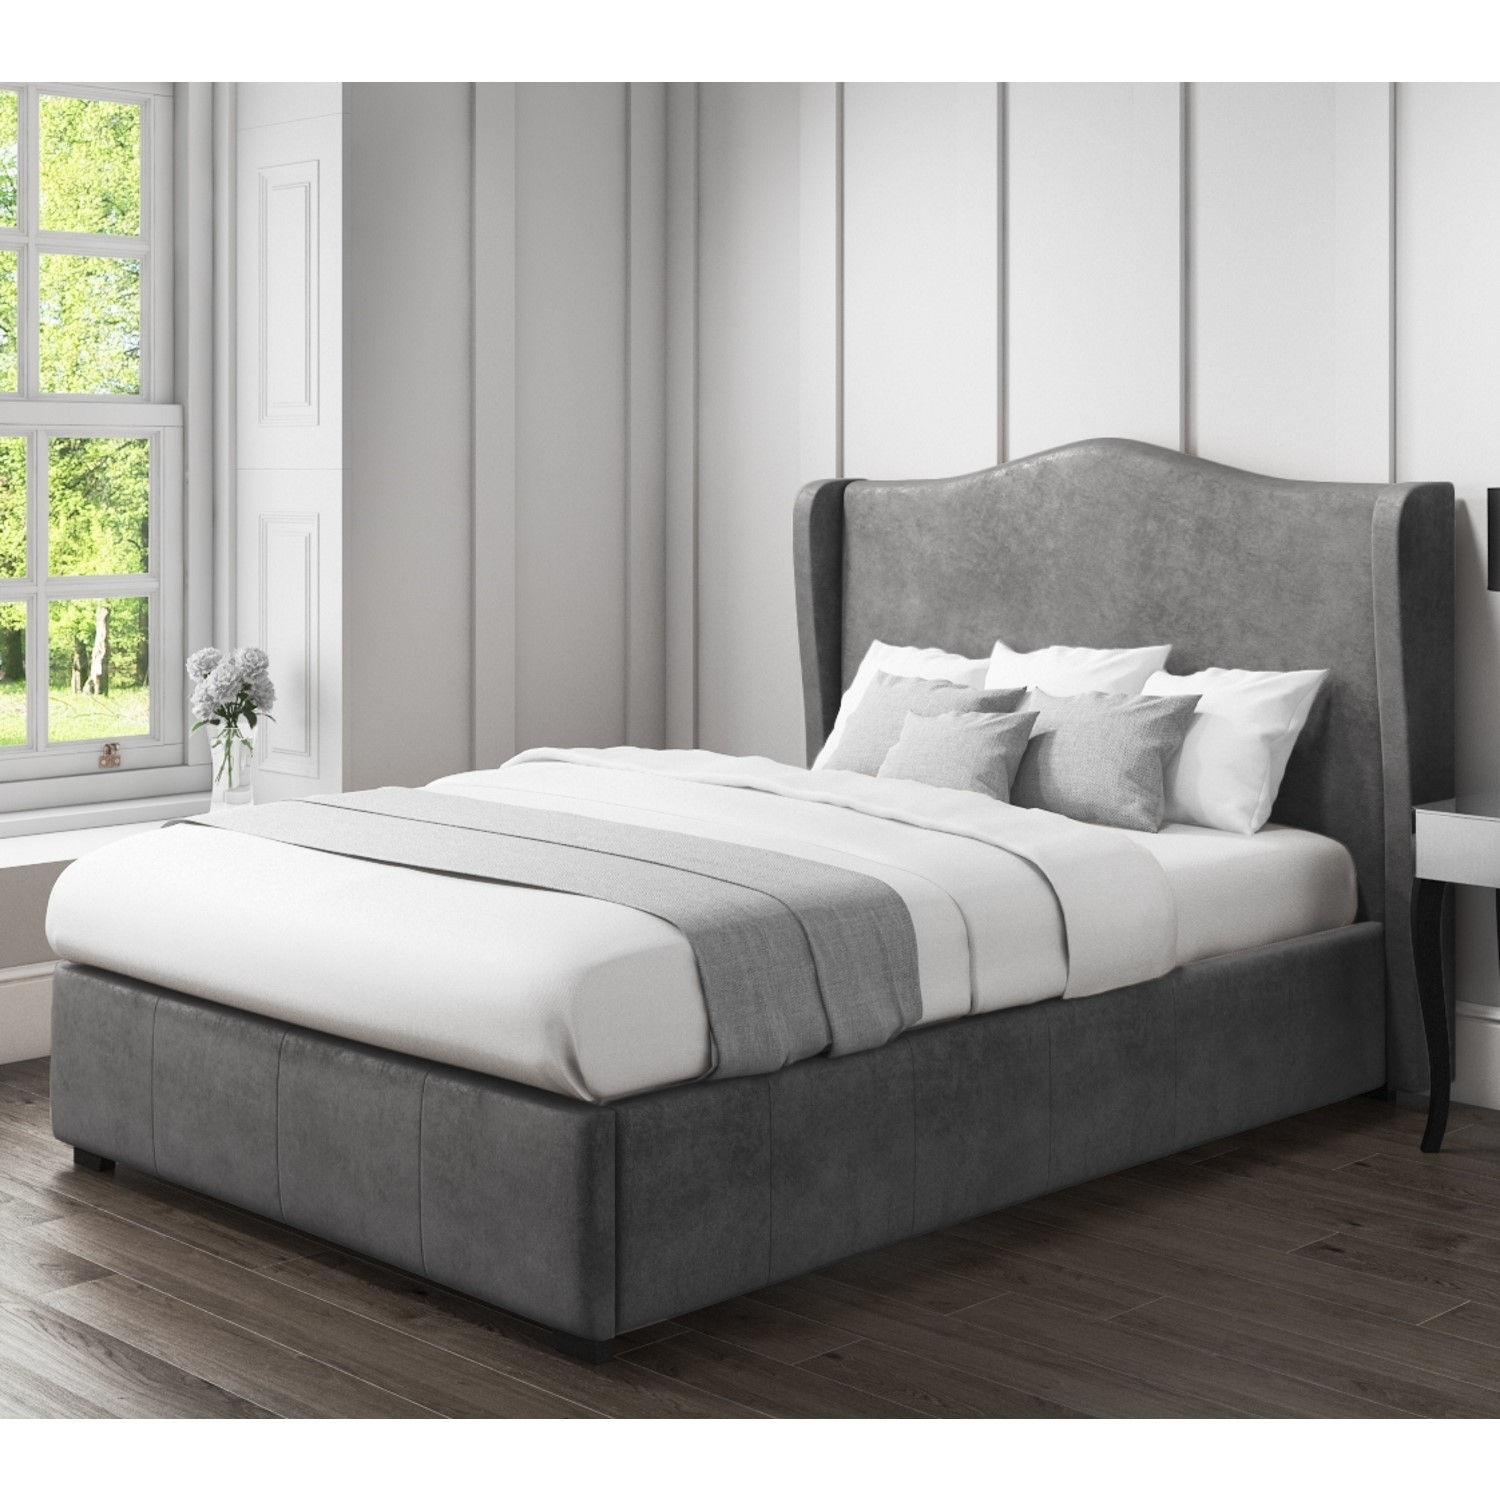 Ottomans Ellis Dark Grey Velvet Finish Storage Chest: Stylish Safina Wing Back King Size Ottoman Bed In Grey